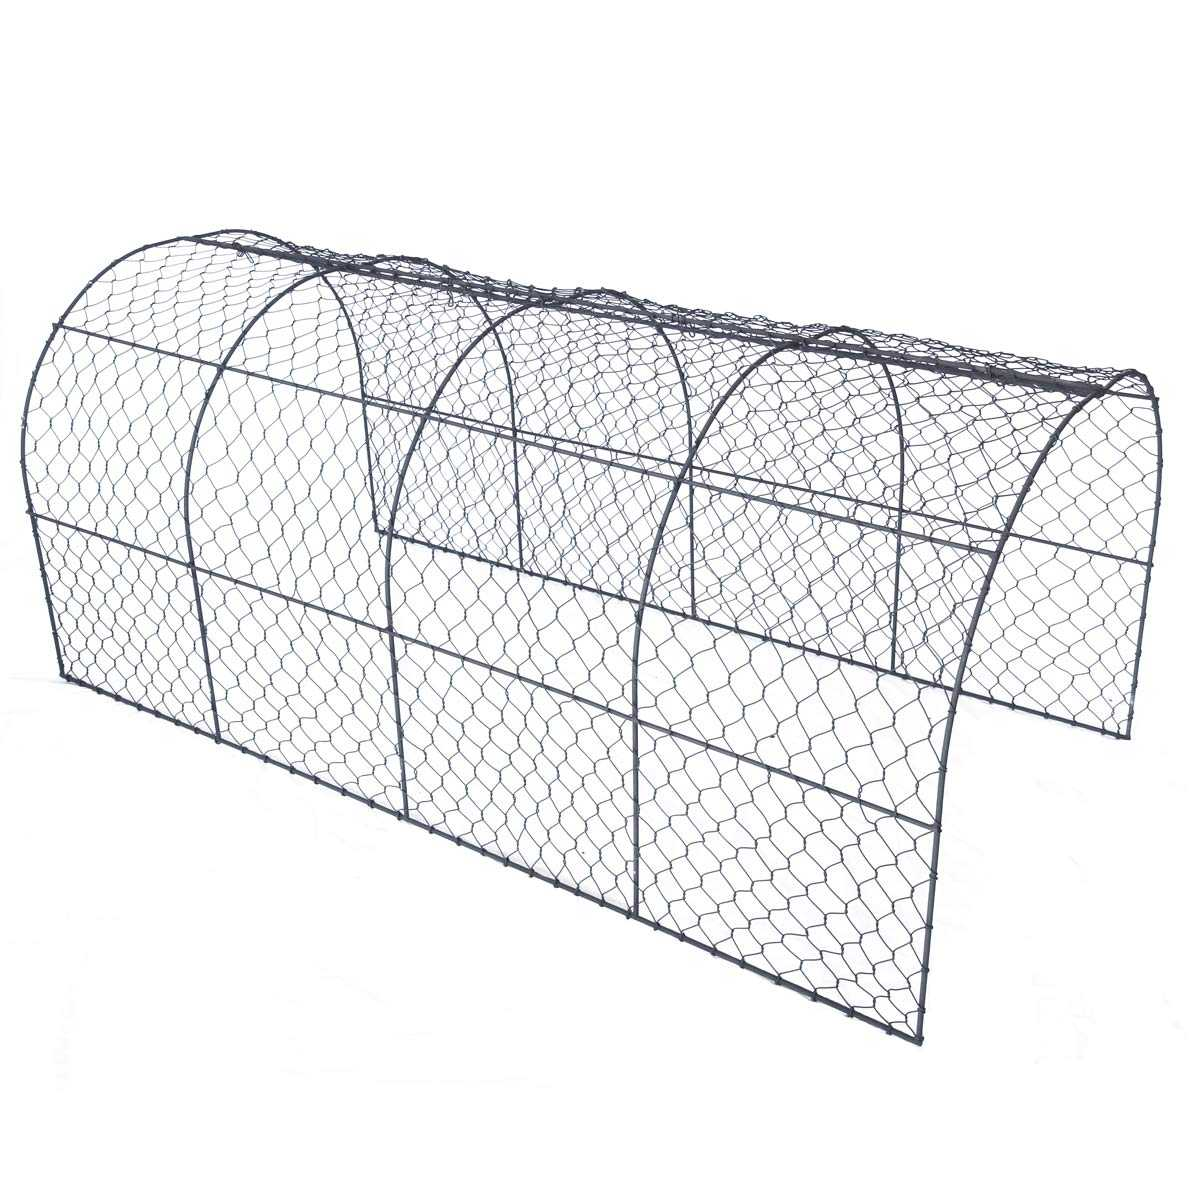 Tunnel de protection en grillage à poule - Grand modèle 120cm